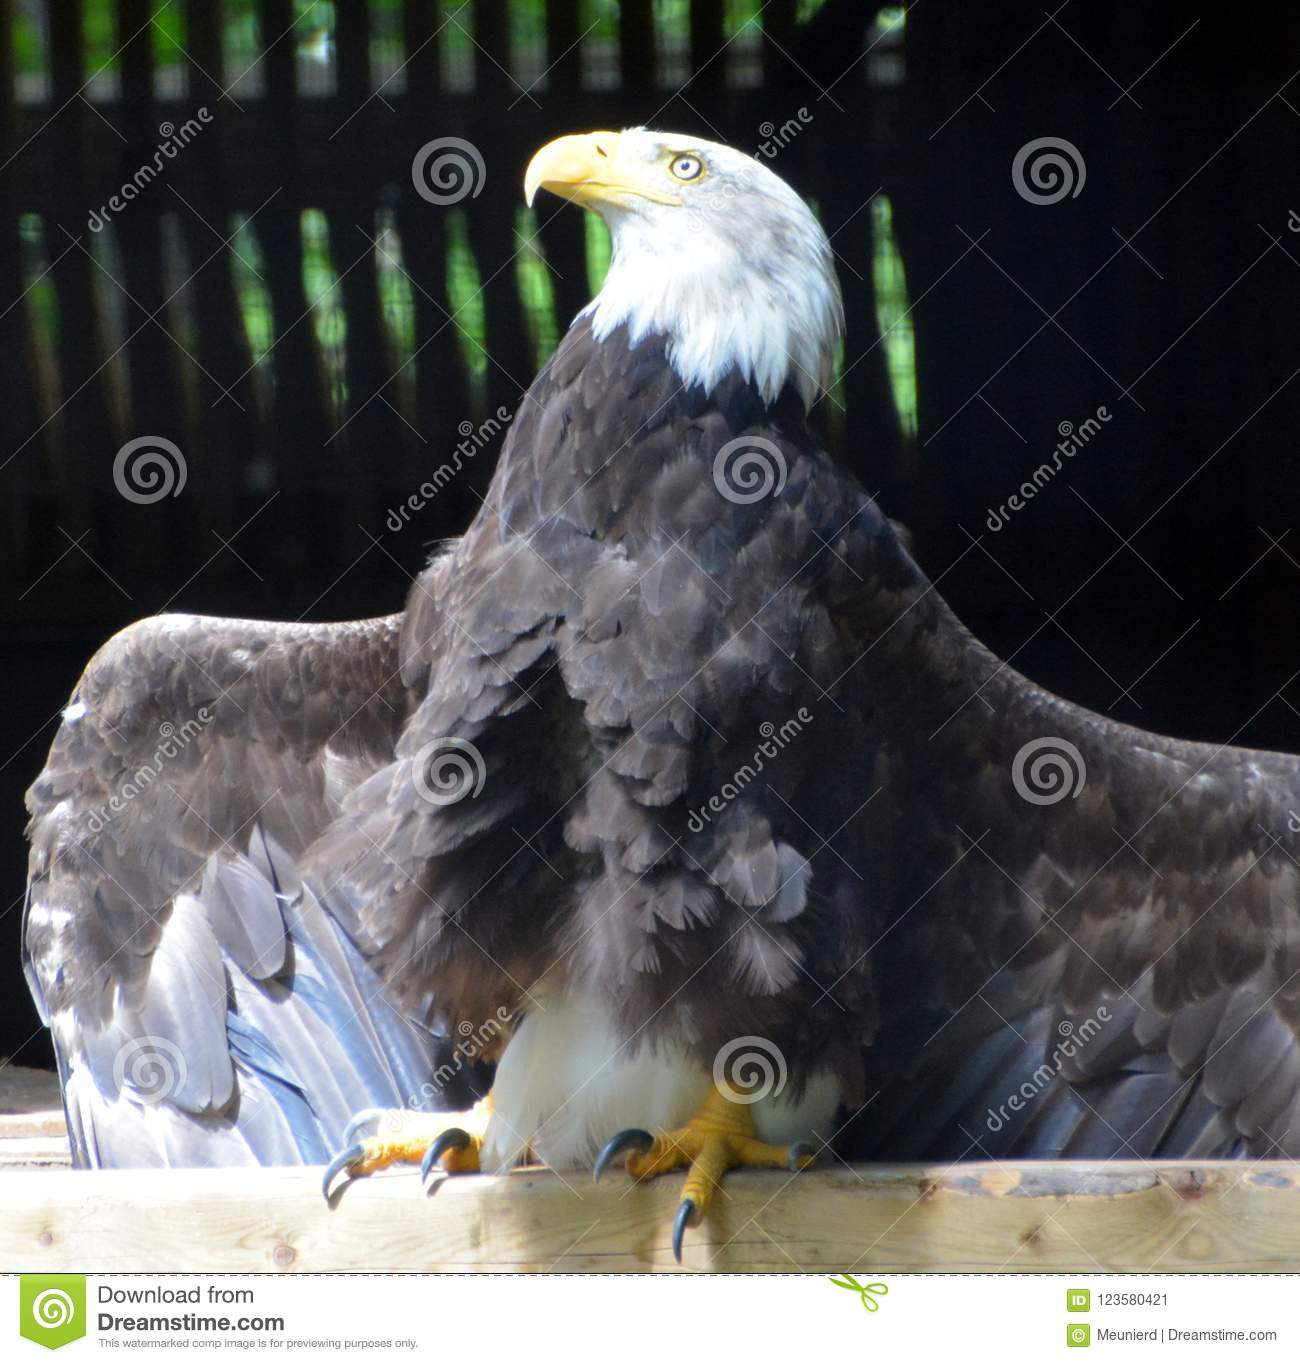 The Bald Eagle Is A Bird Of Prey Stock Image Image Of Detail America 123580421